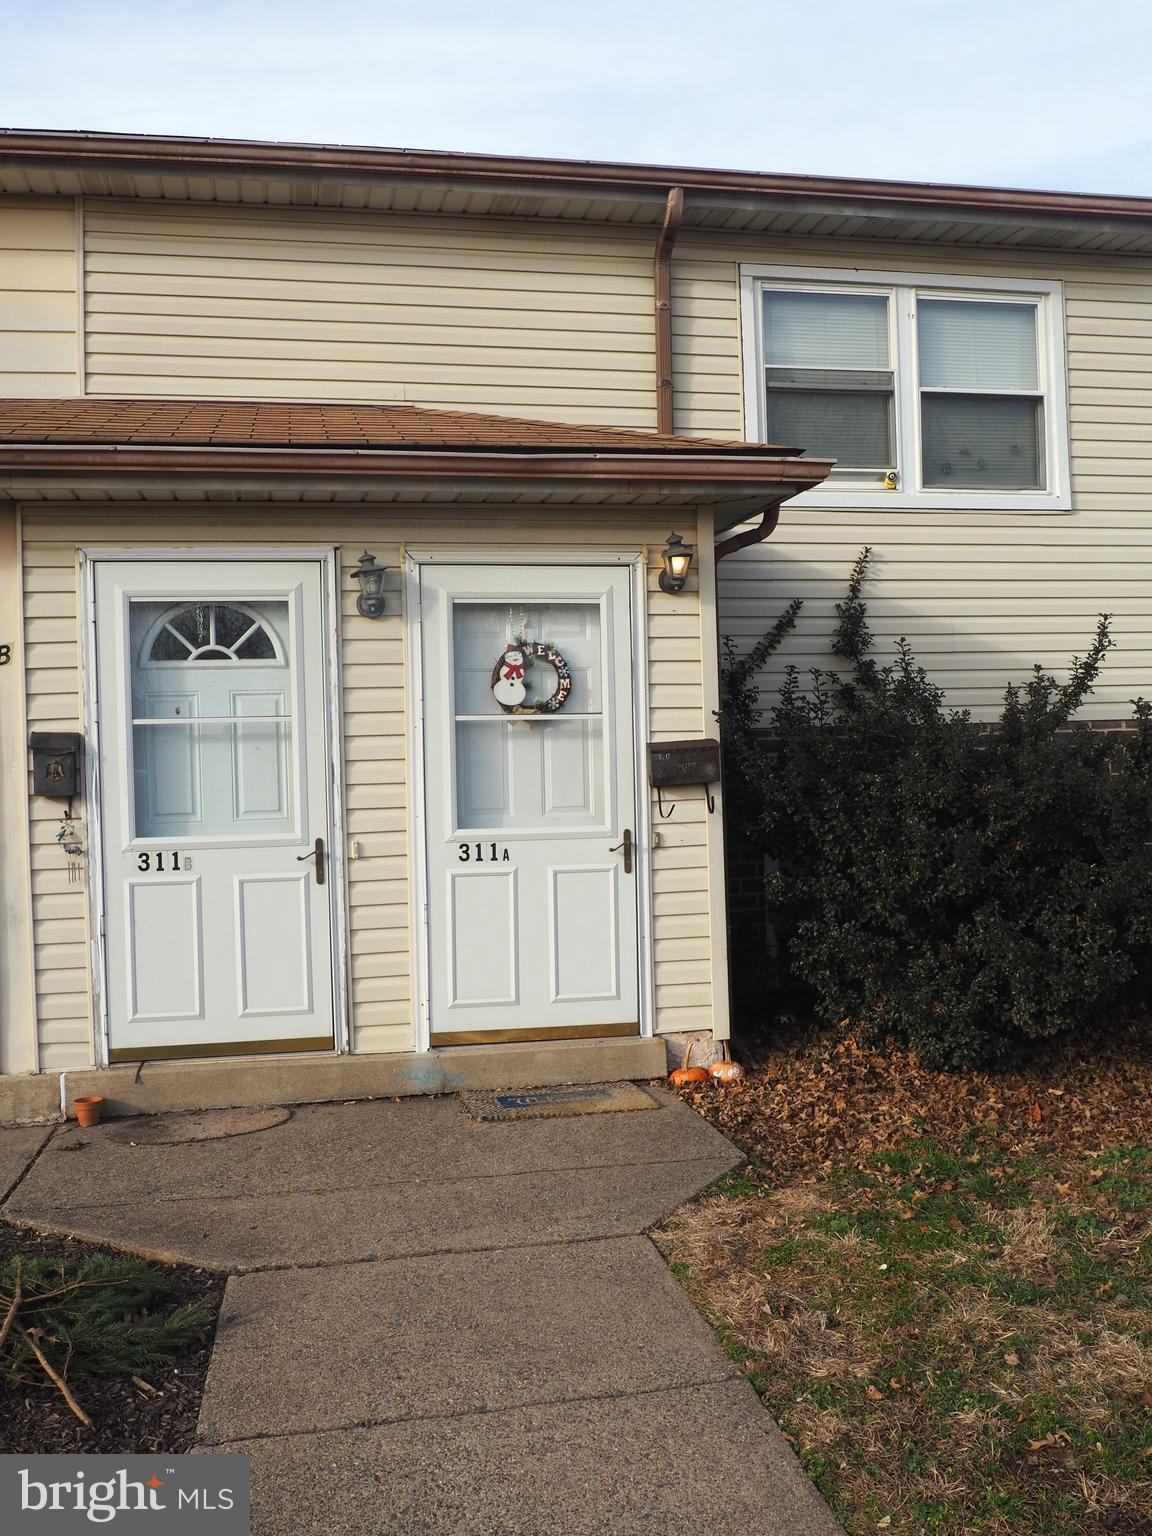 311 Unit A & B FORGE ROAD, EAST GREENVILLE, PA 18041